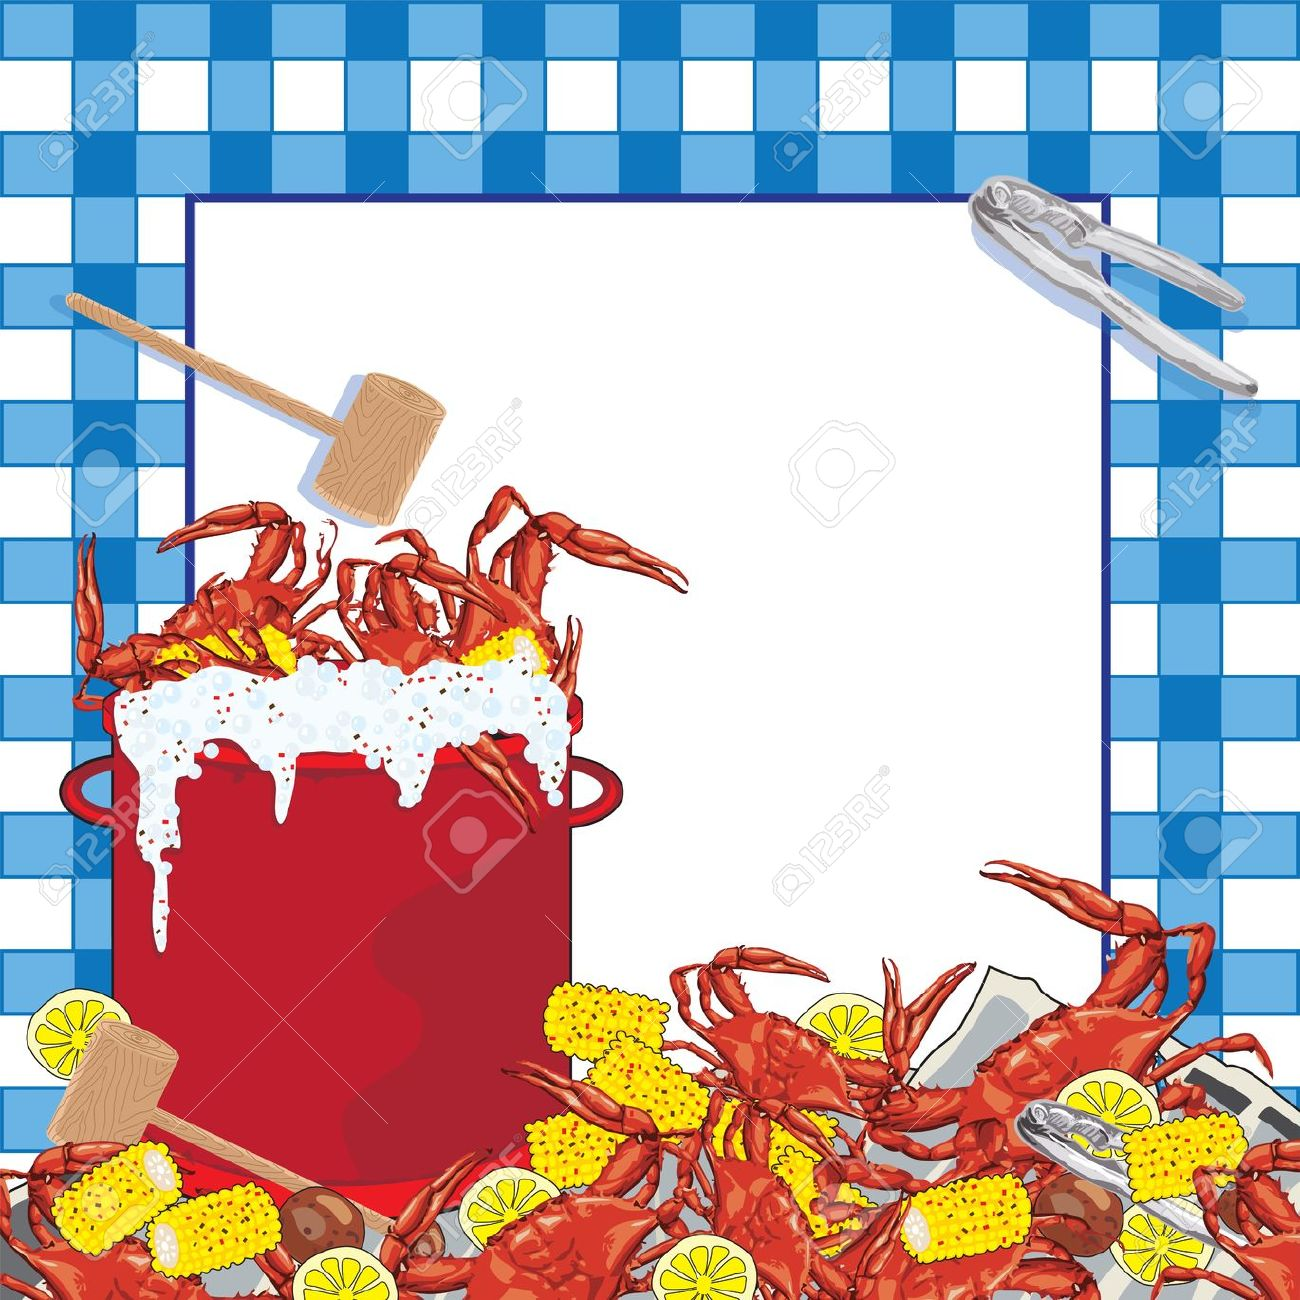 Crawfish in pot clipart.